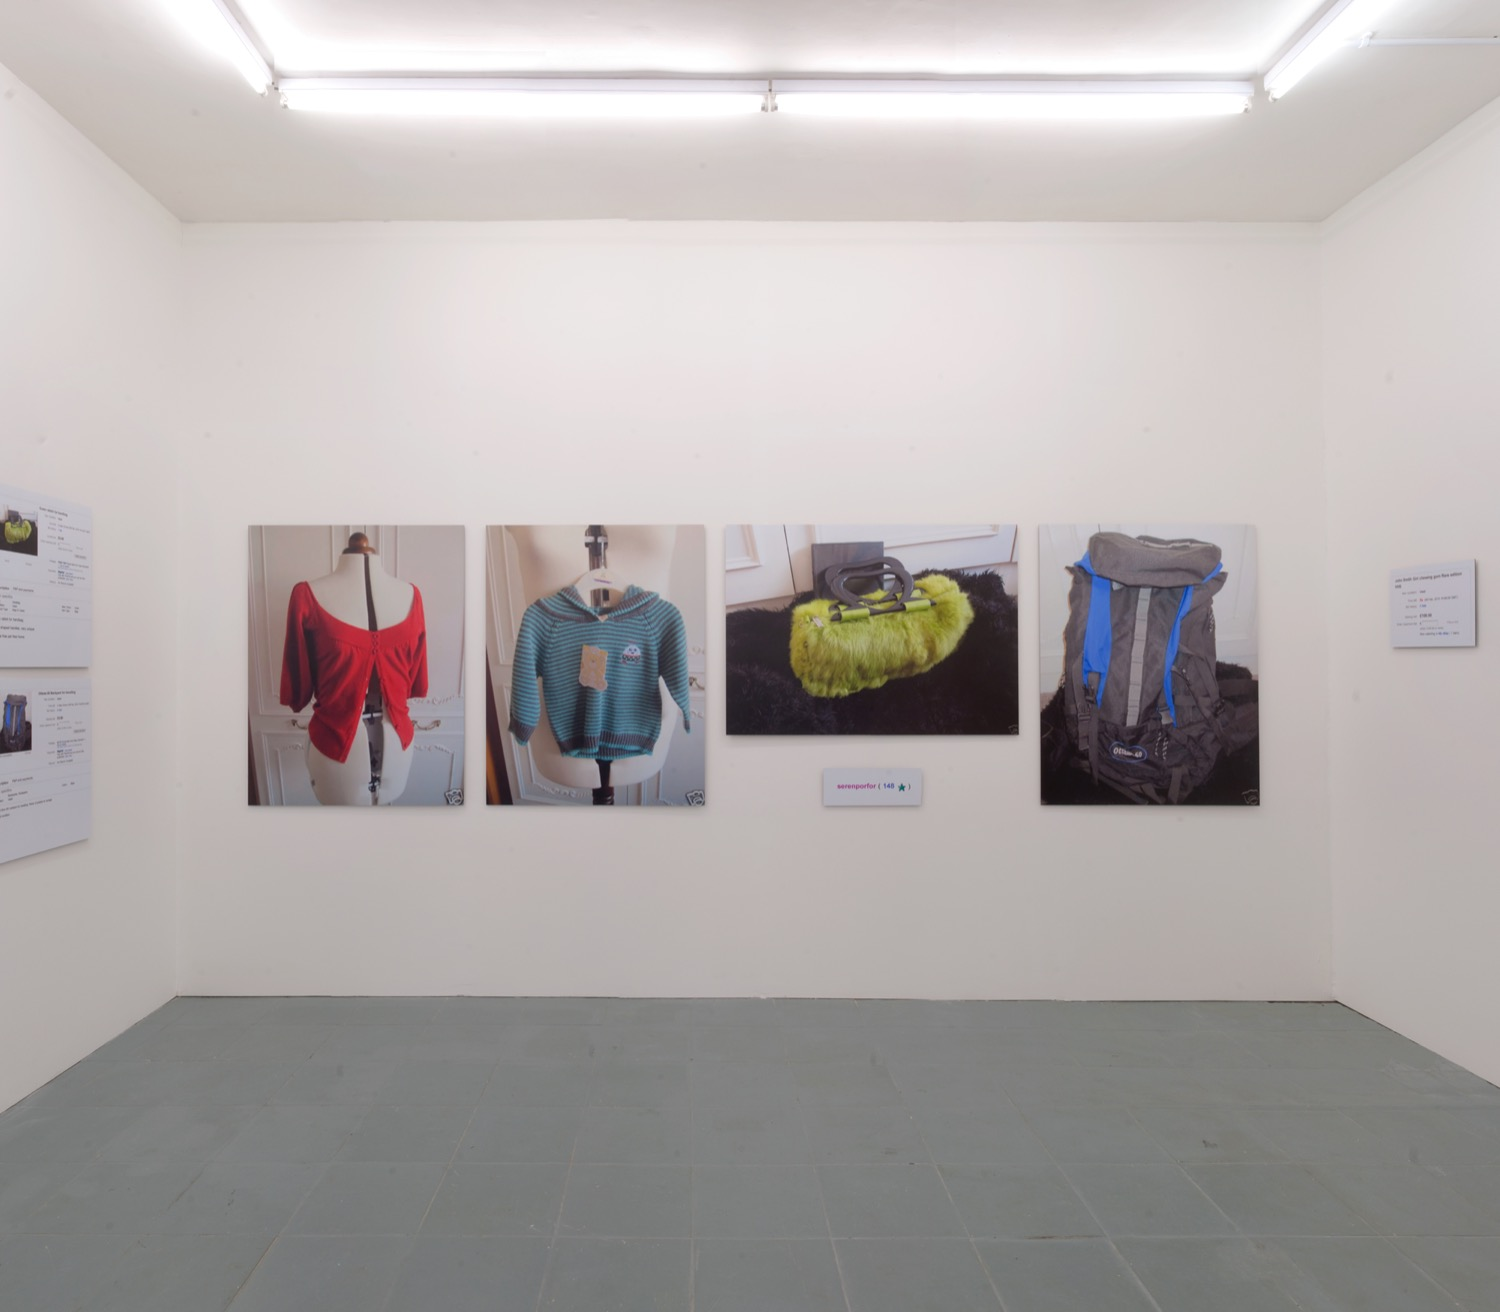 John Smith unusual Red cardigan. Installation view at PEER. Photo: Chris Dorley-Brown